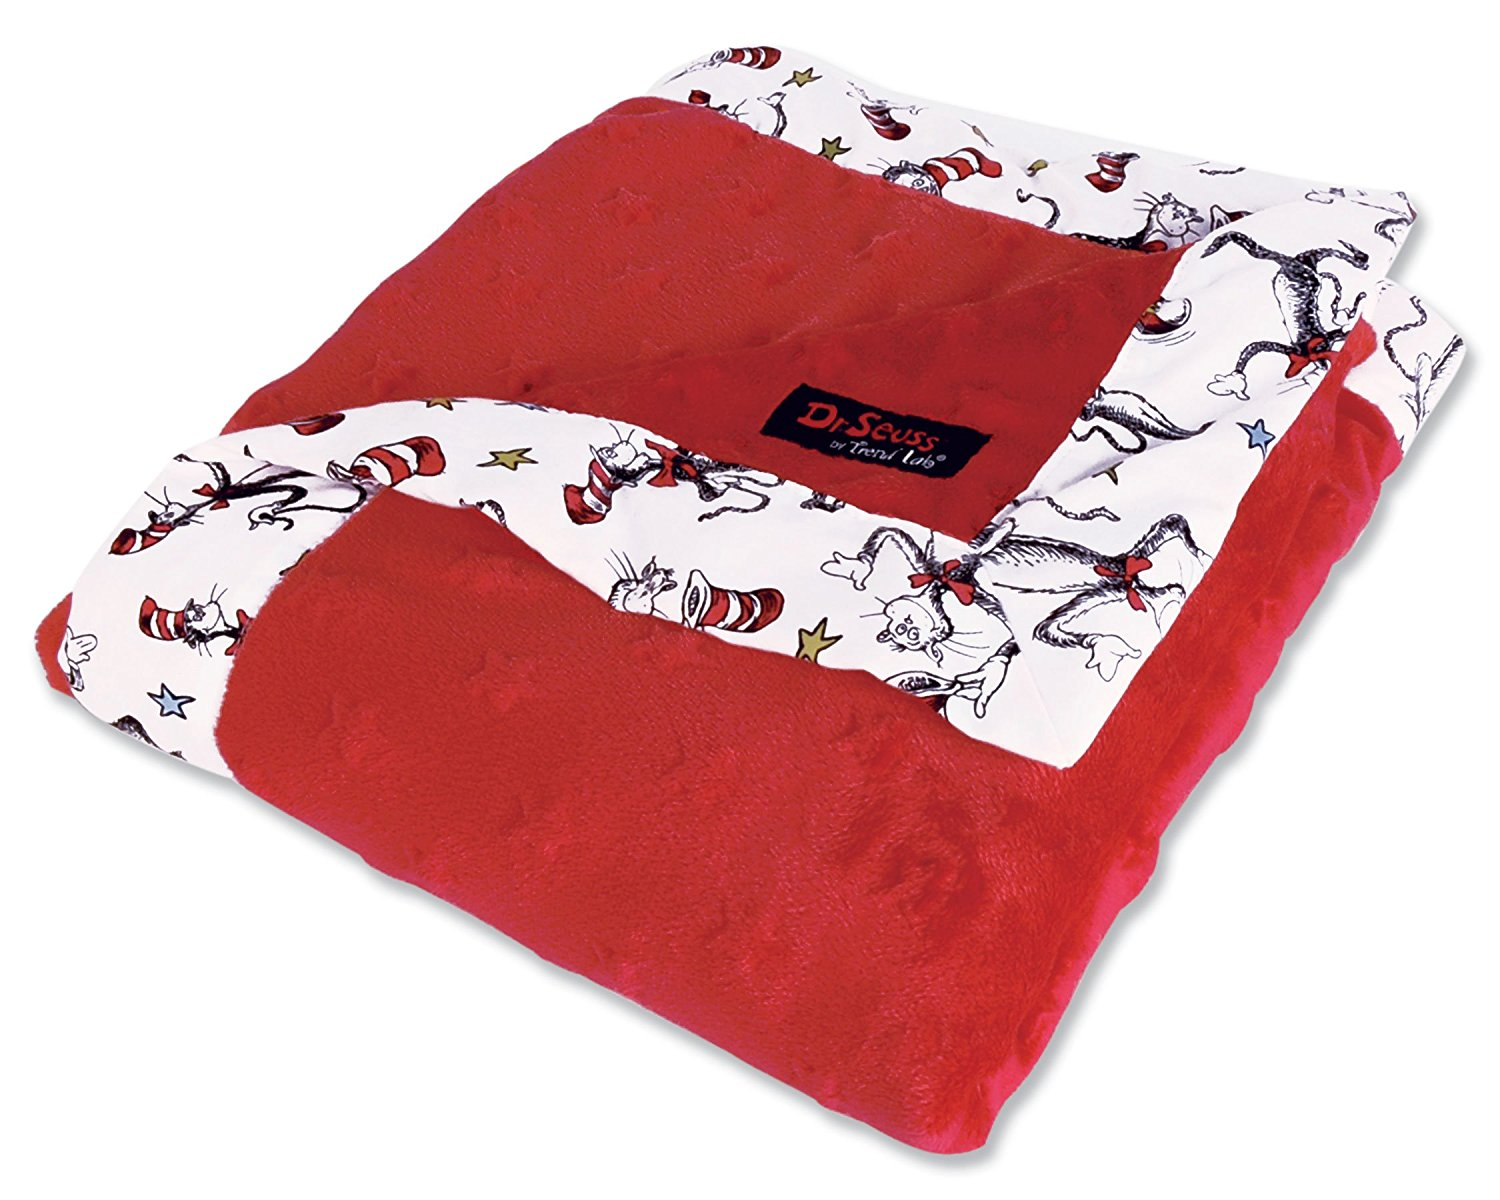 Dr. Seuss Receiving Blanket, Cat In The Hat Red, blanket: 100 percent polyester; frame: 100 percent cotton By... by Trend Lab